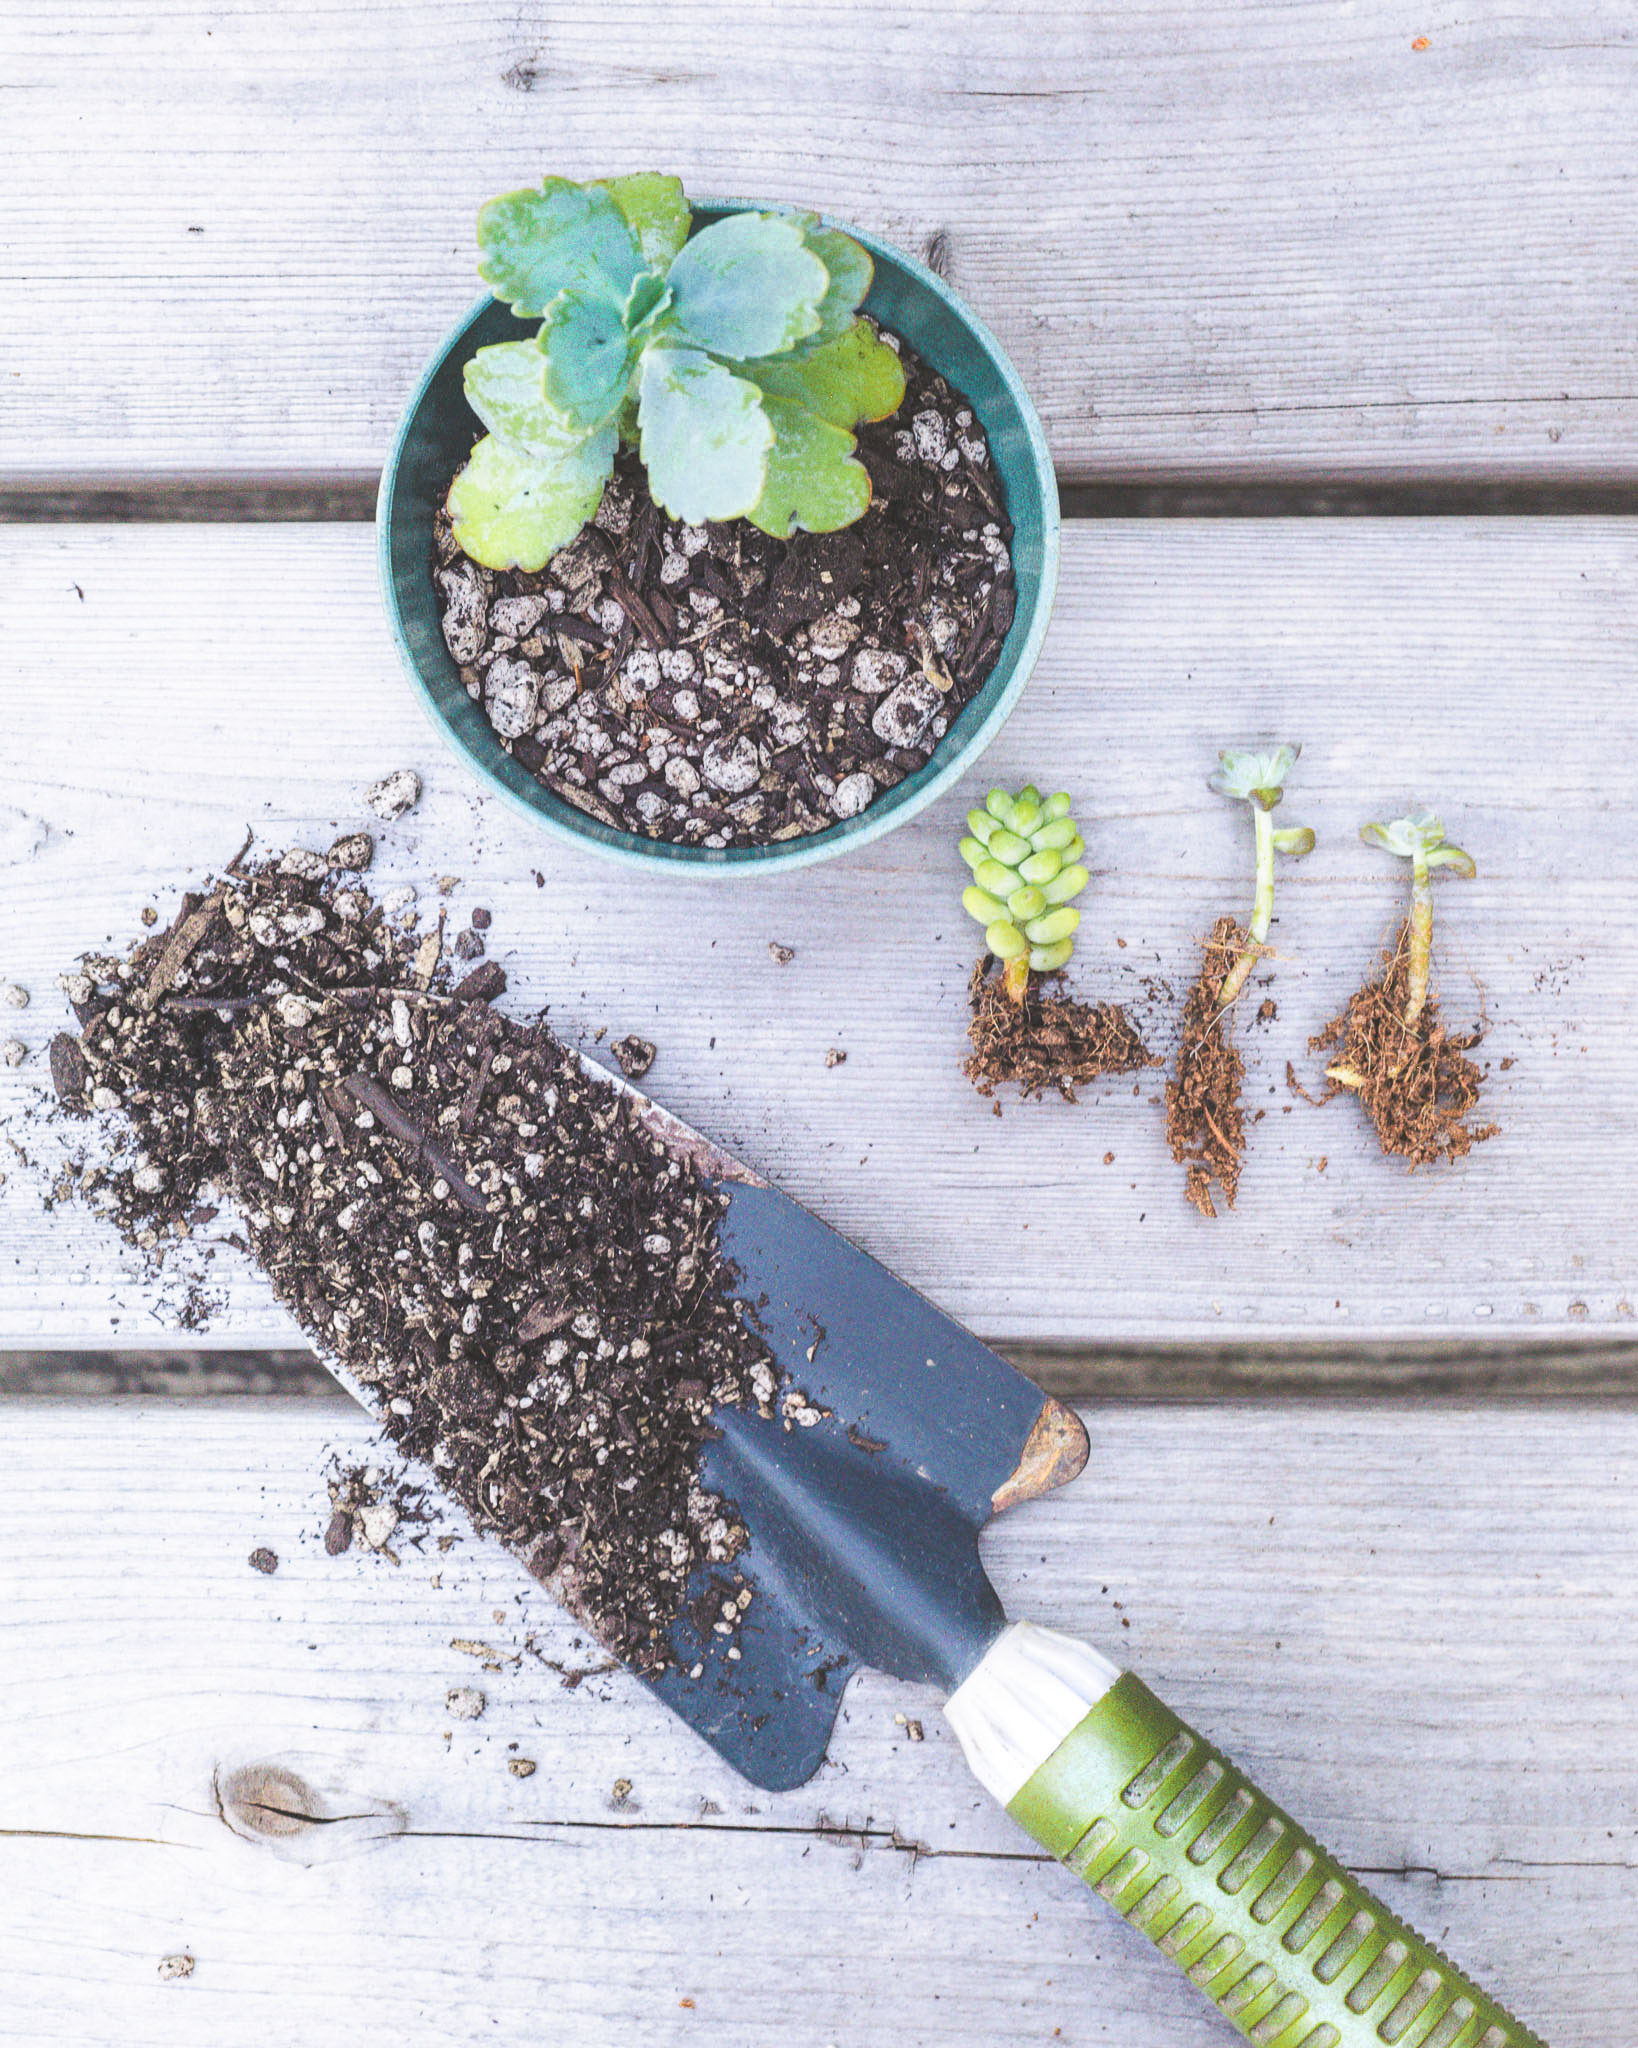 Repotting Succulents: A How-To